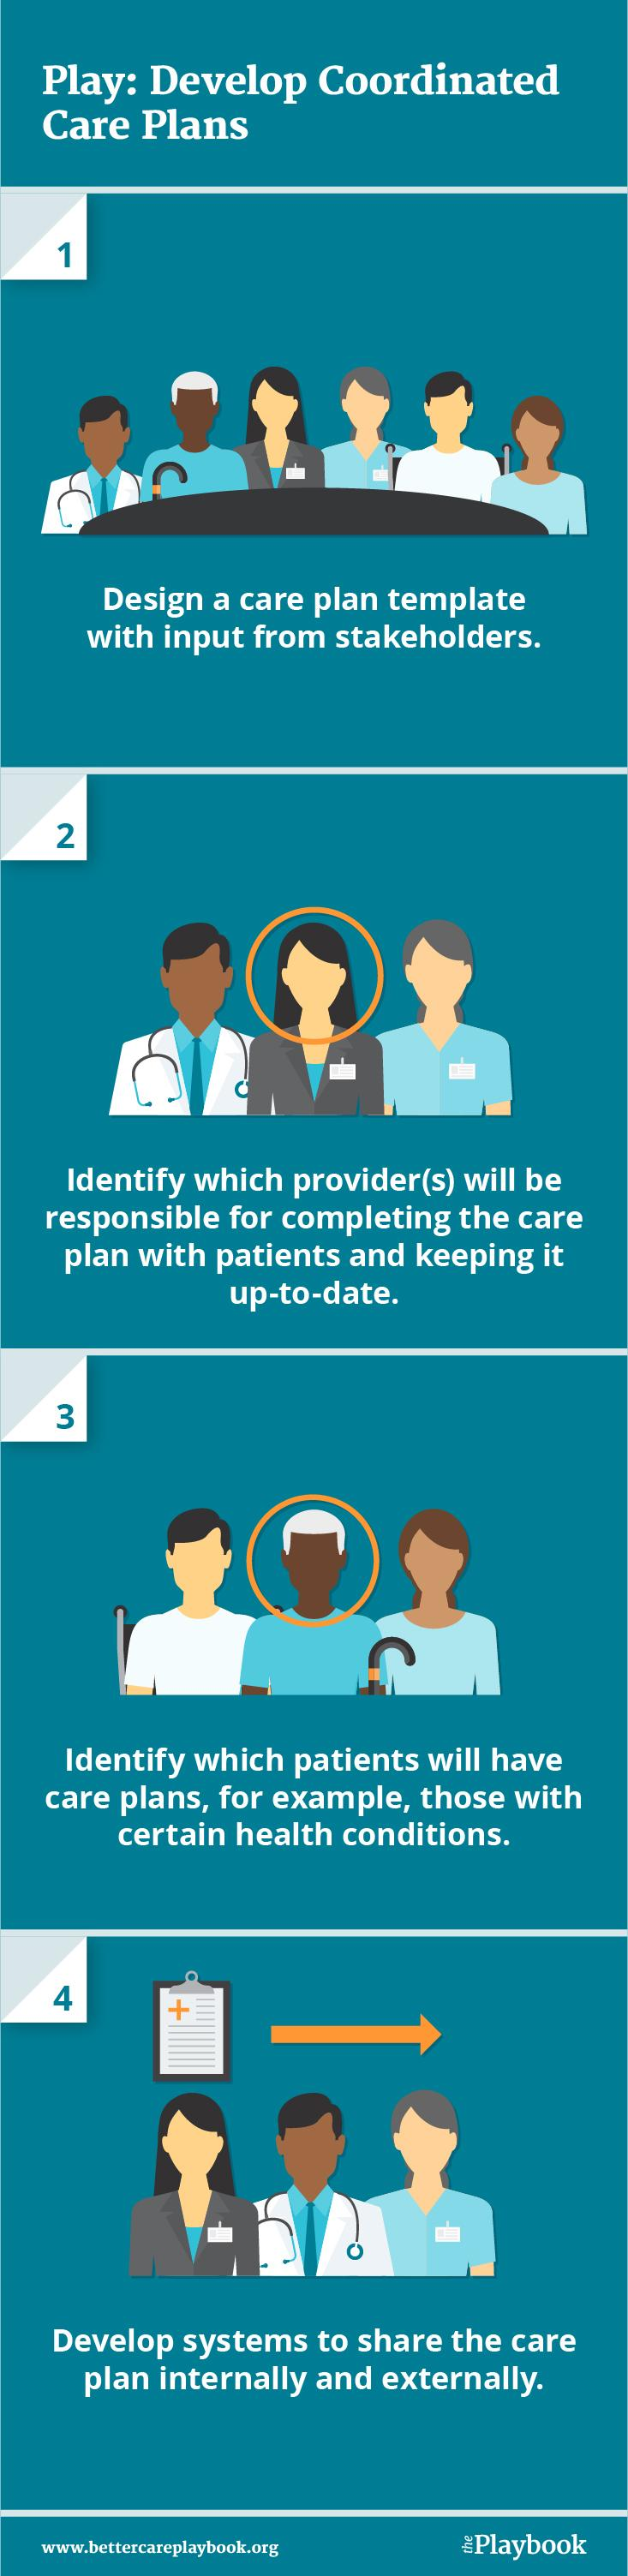 Play: Develop Coordinated Care Plans